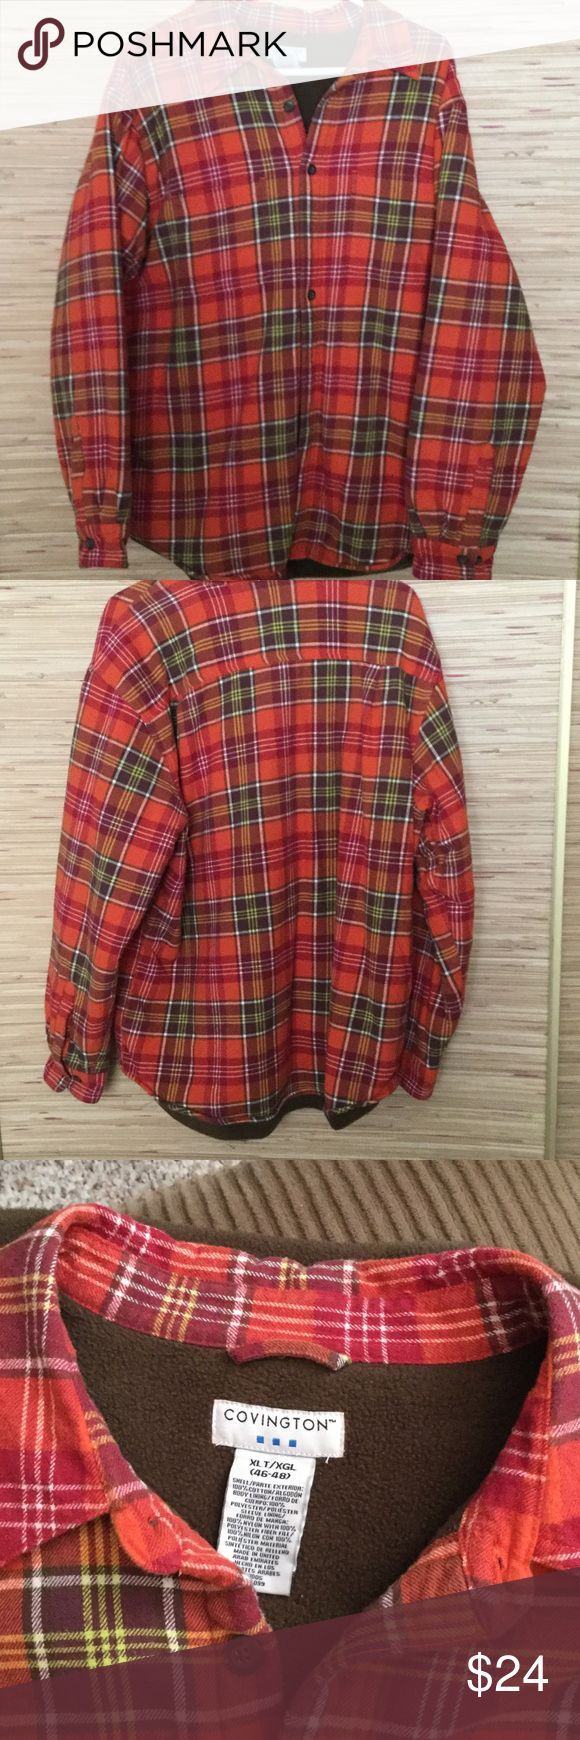 Plaid flannel lined shirt Plaid flannel shirt with fleece lining, sleeves are a quilted nylon, shirt tail hem, 2 chest pockets, button front, color is orange, Rd, brown, white plaid, size XLT (46-48), shell exterior 100% cotton, body lining, 100% polyester,  sleeve lining 100% nylon with polyester fill, medium weight, nice weight when it's chilly outside, no signs of wear, fro a smoke free home Covington Shirts Sweatshirts & Hoodies